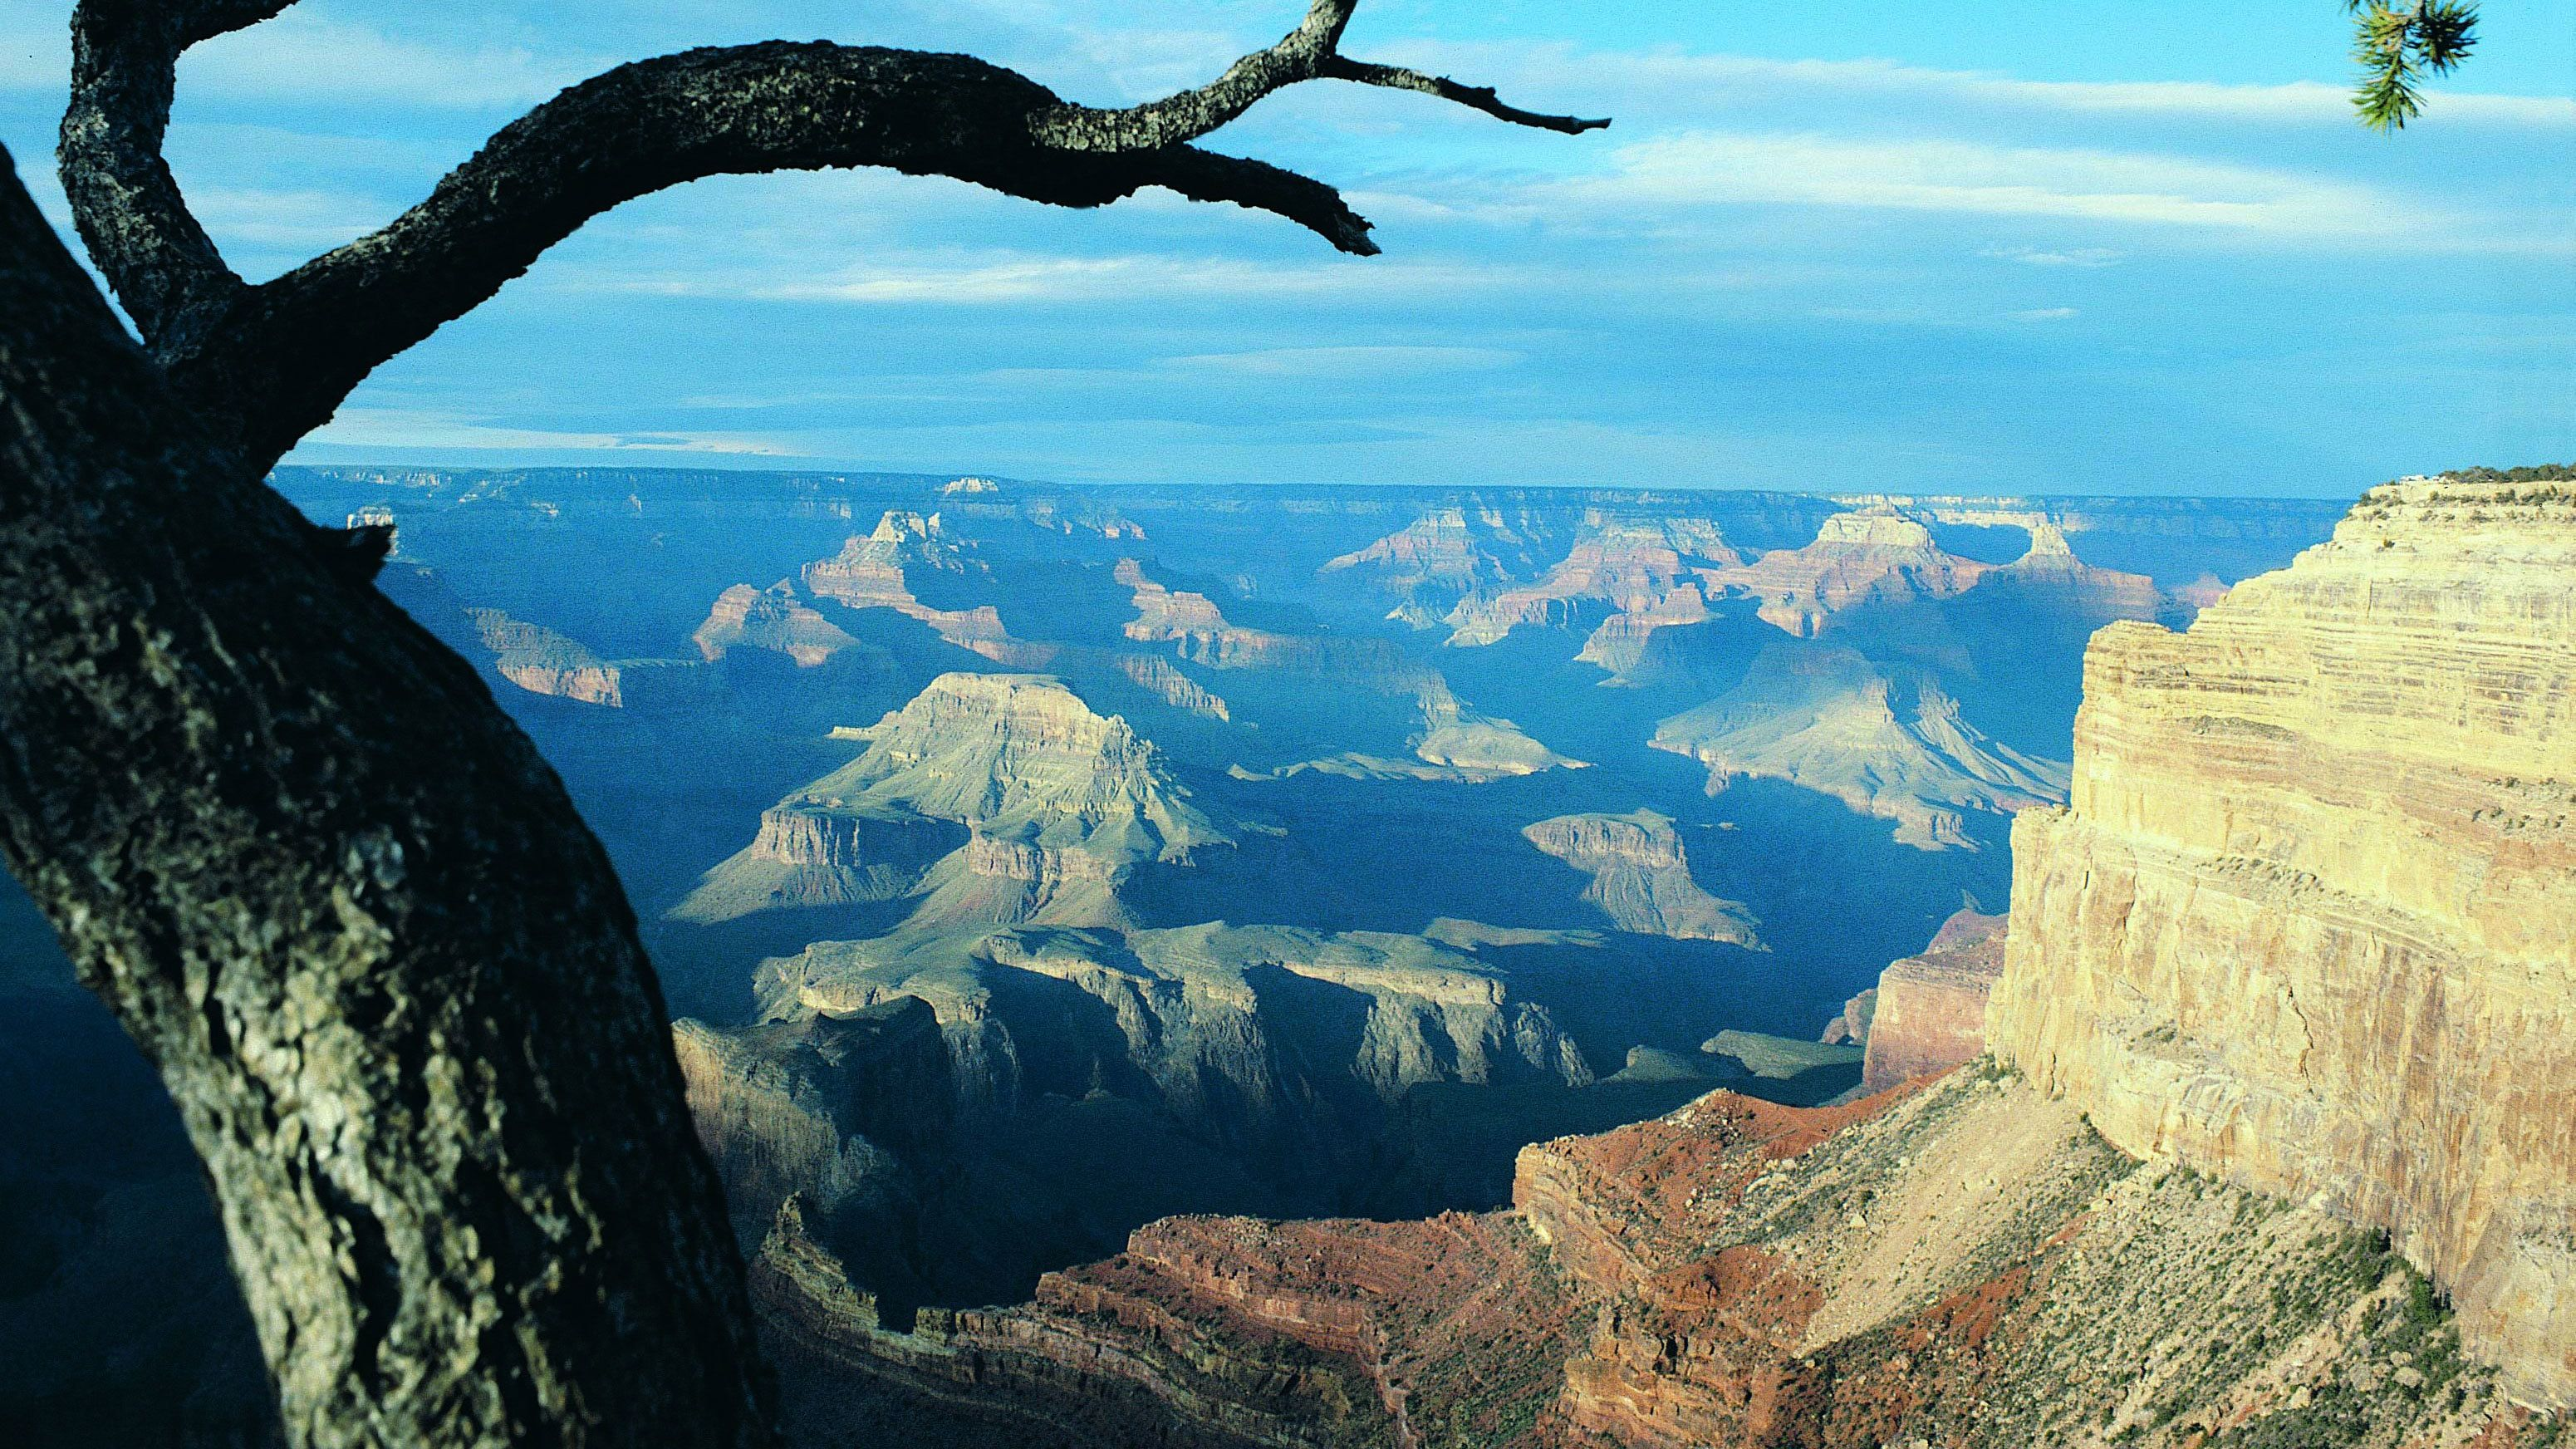 Tree on the edge of the Grand Canyon